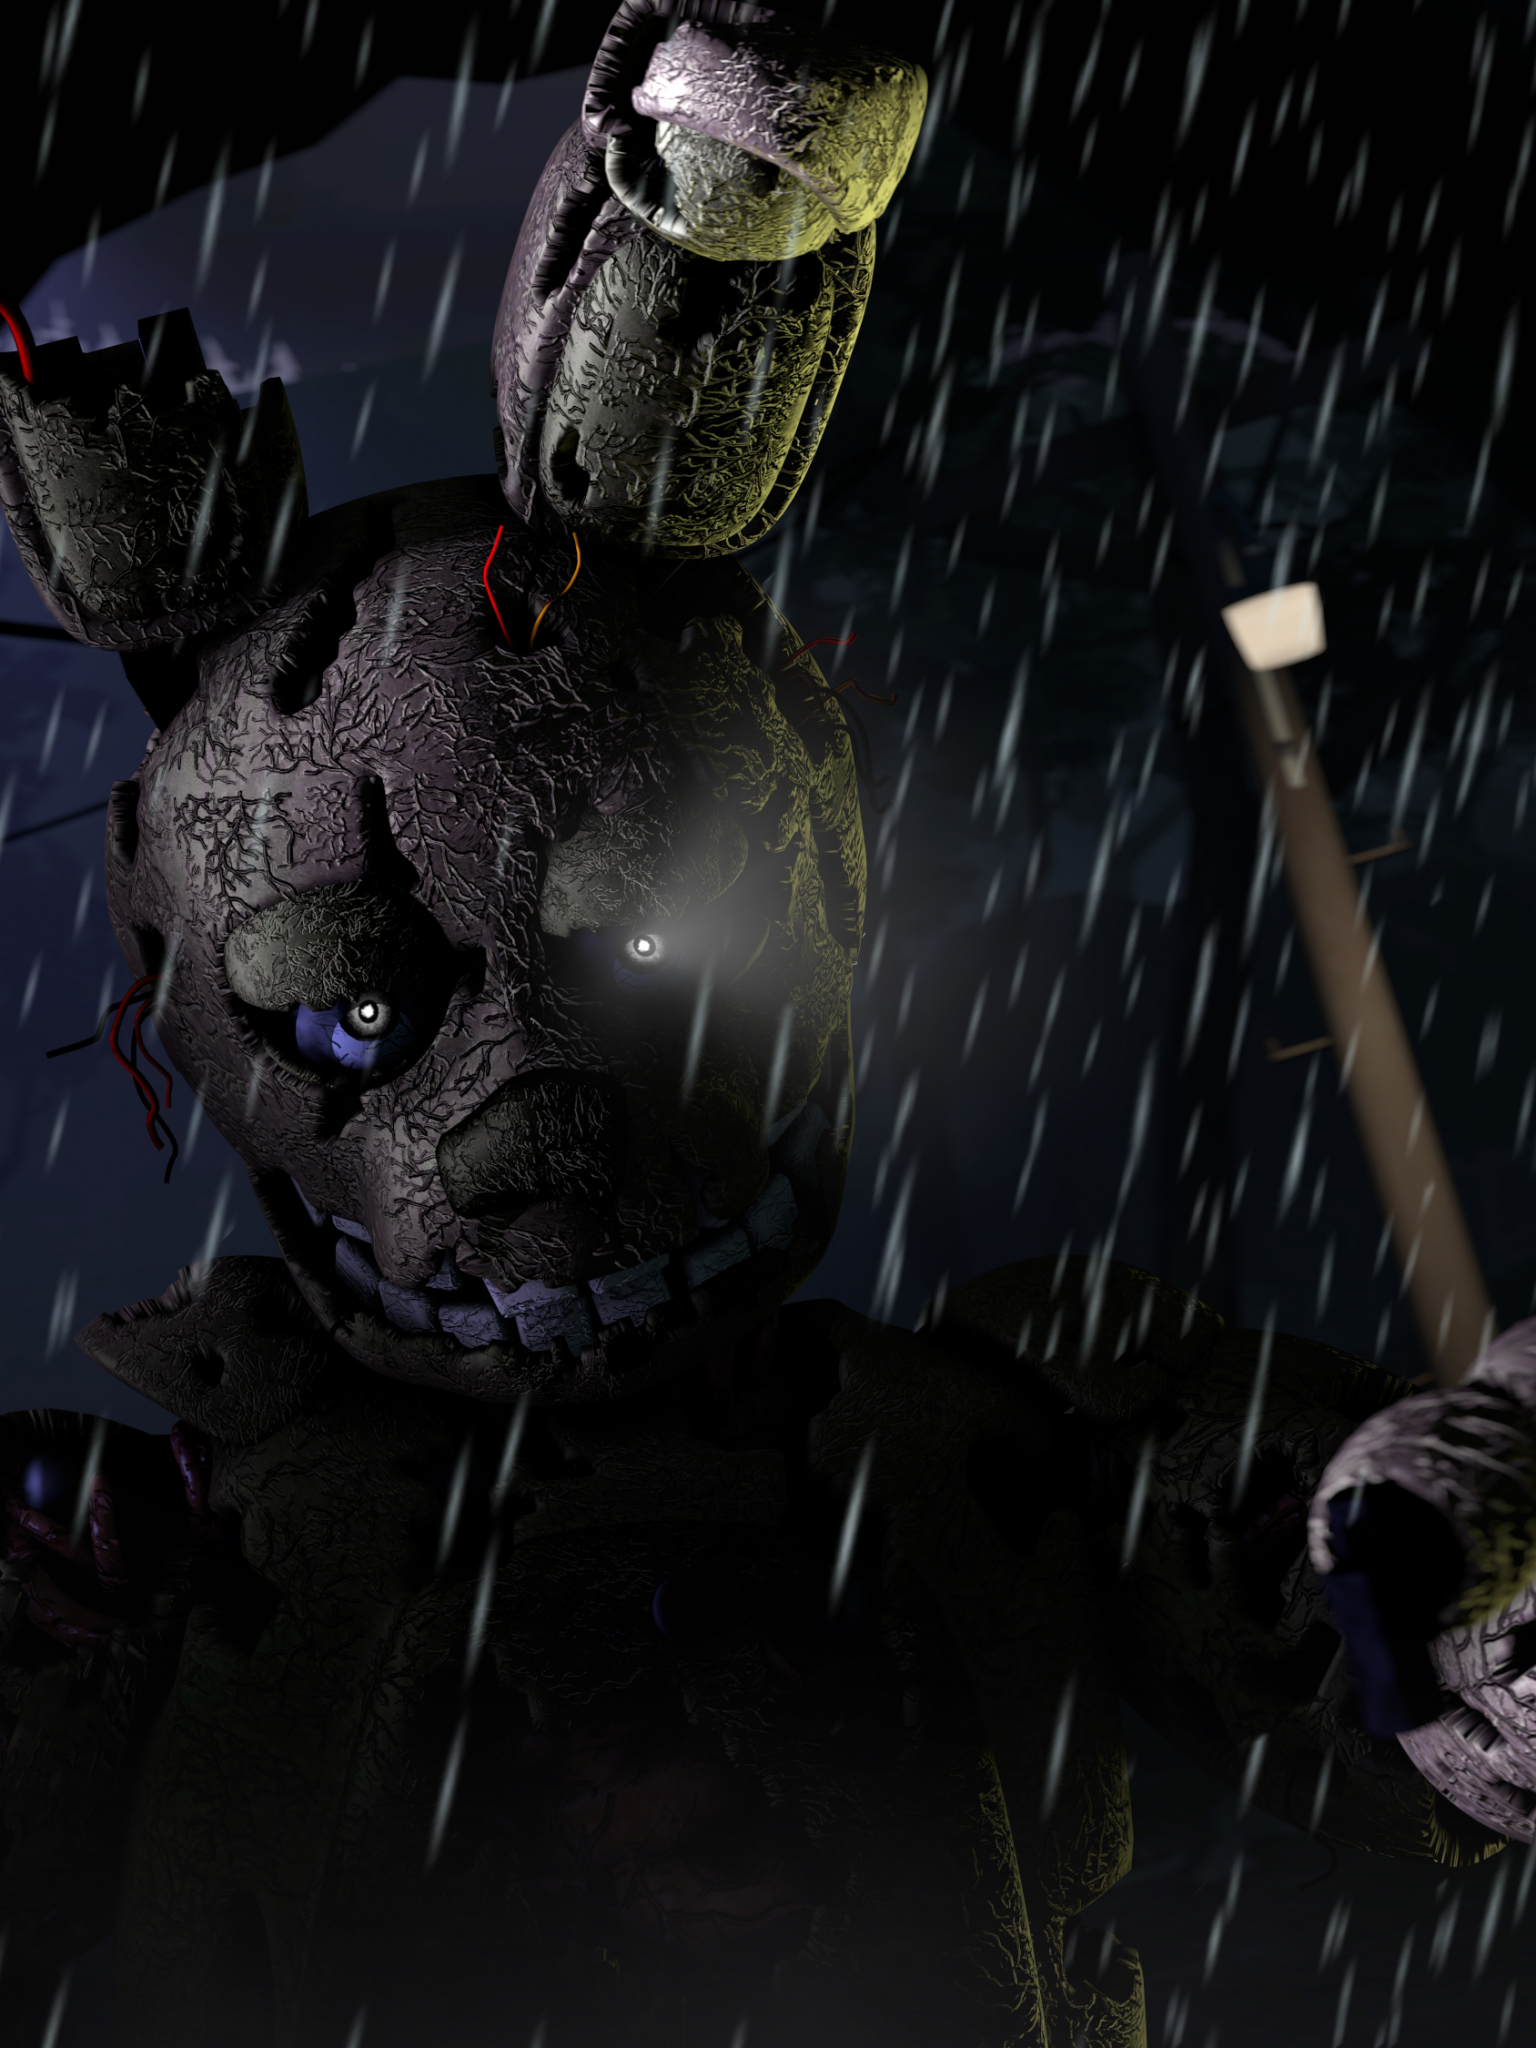 Free Download Five Nights At Freddys 3 4k Ultra Hd Wallpaper